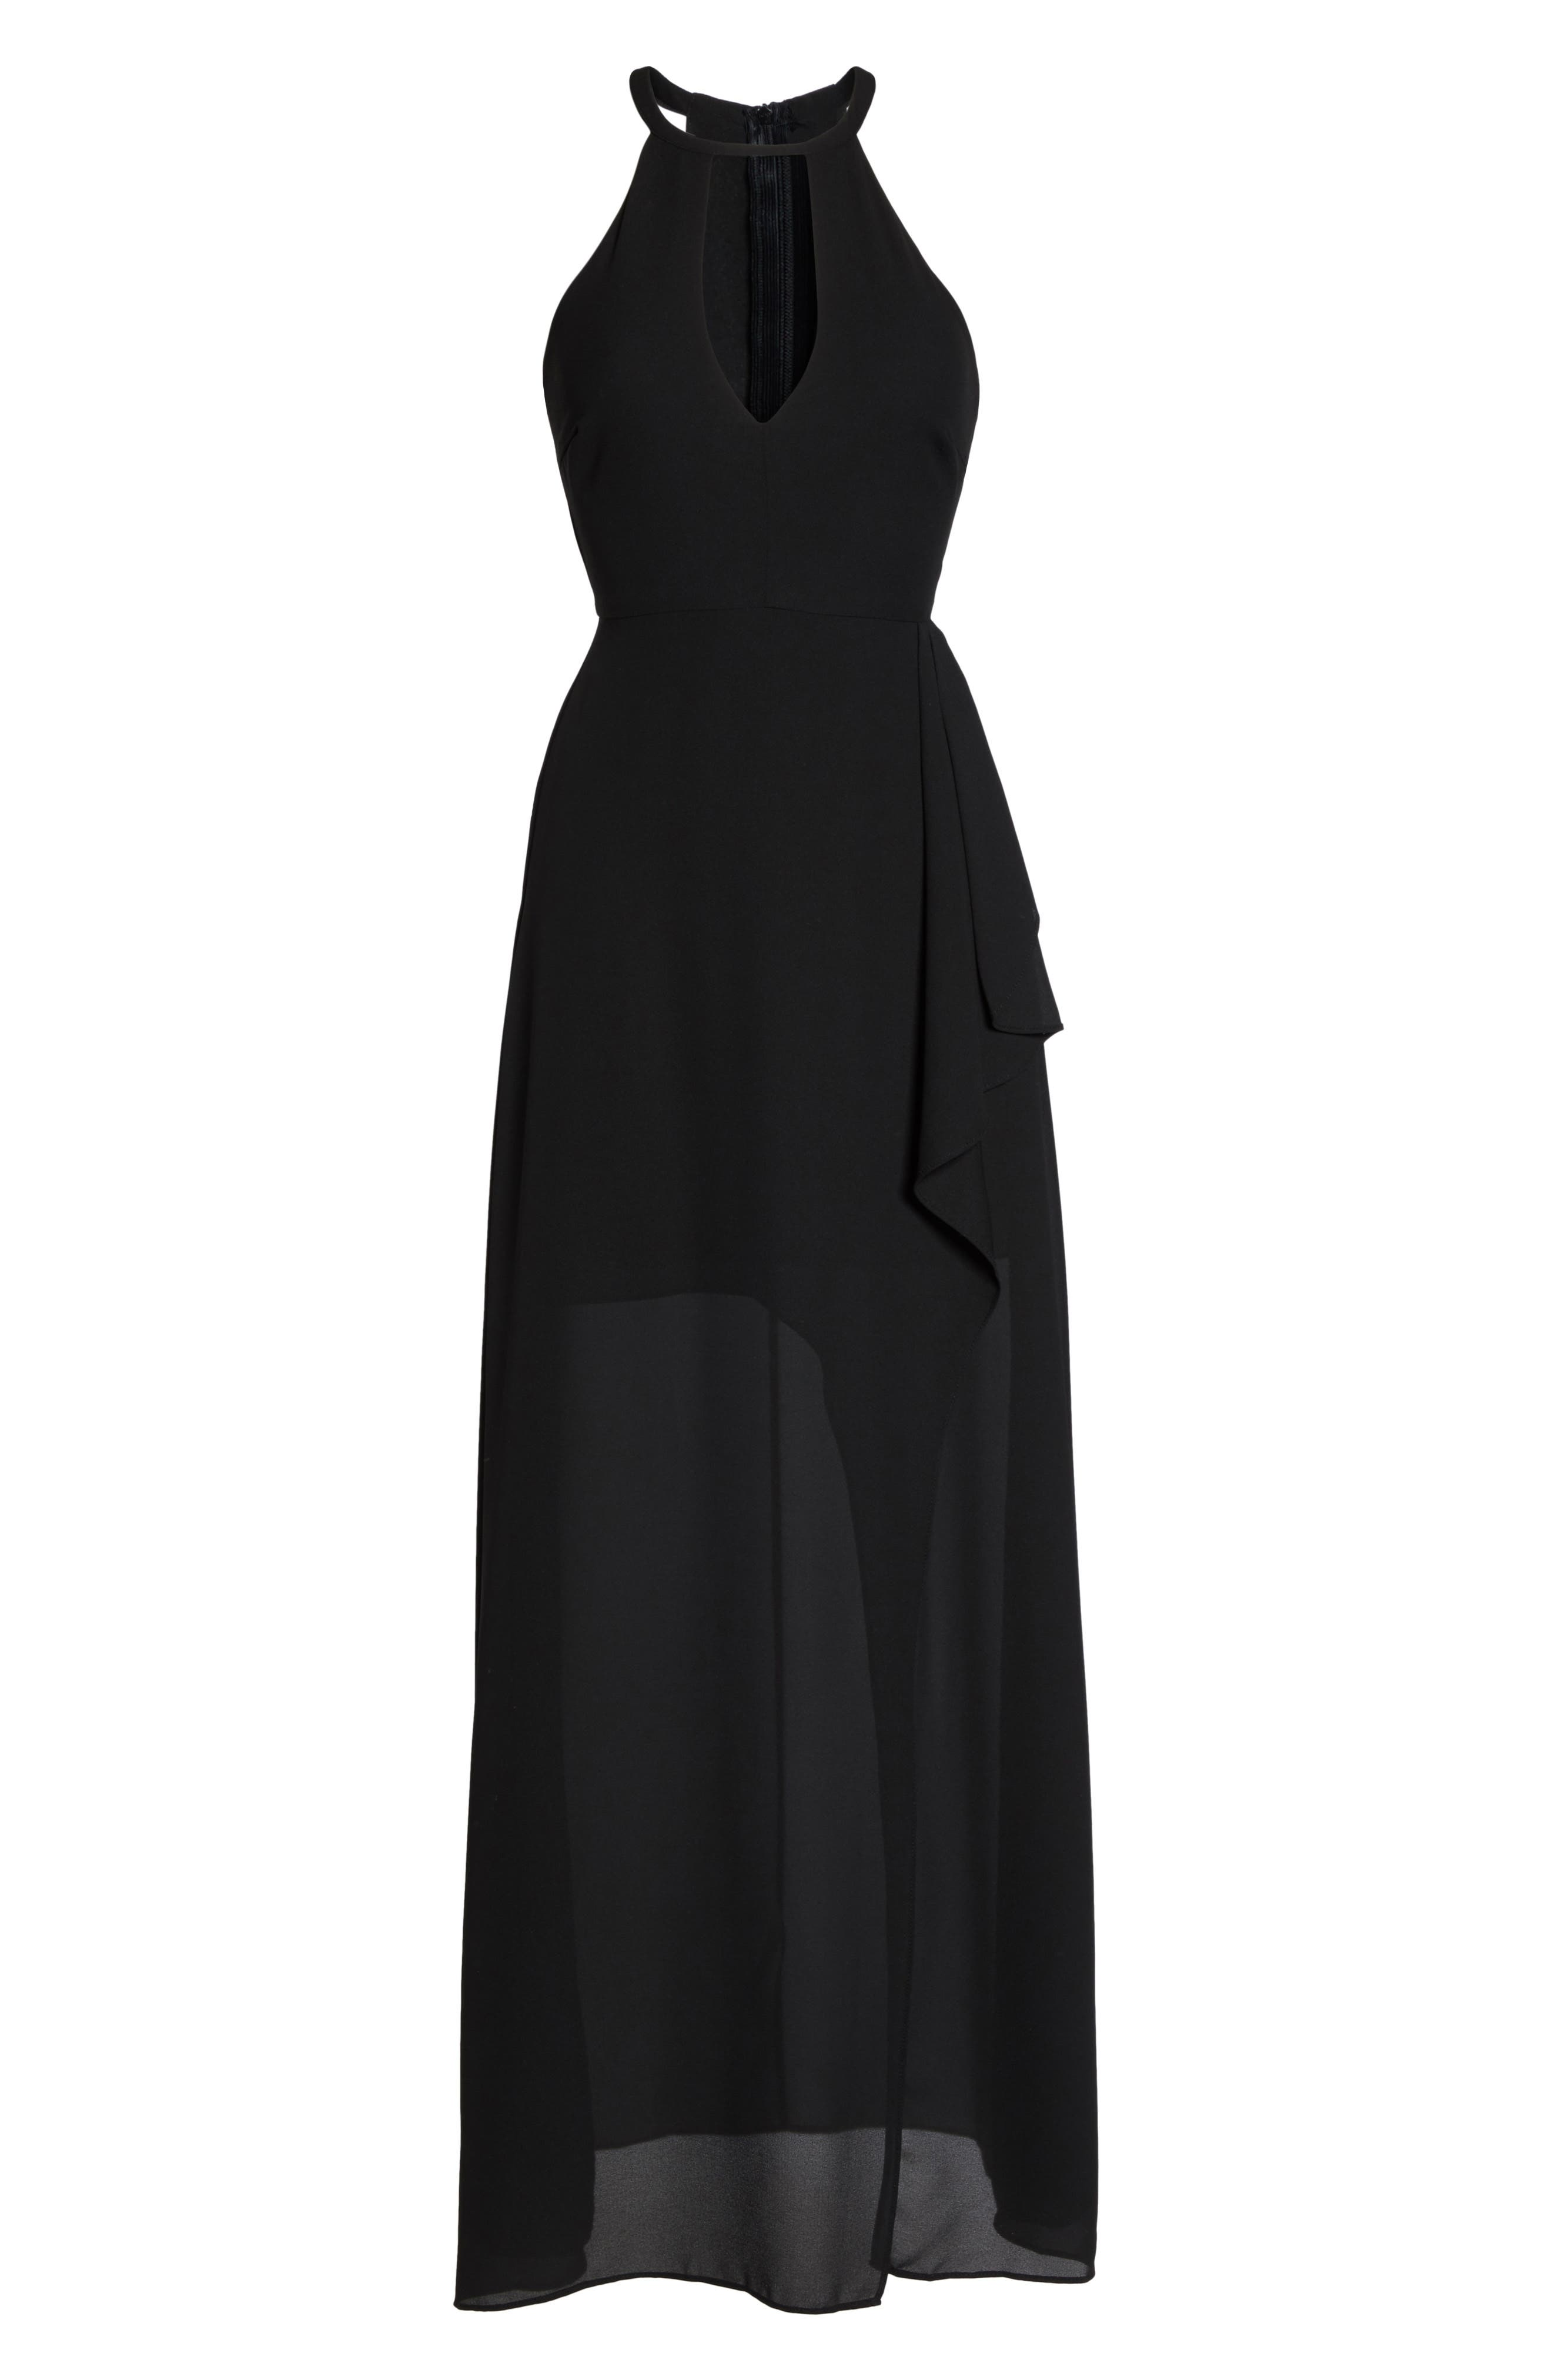 I Spy Maxi Dress,                             Alternate thumbnail 6, color,                             Black